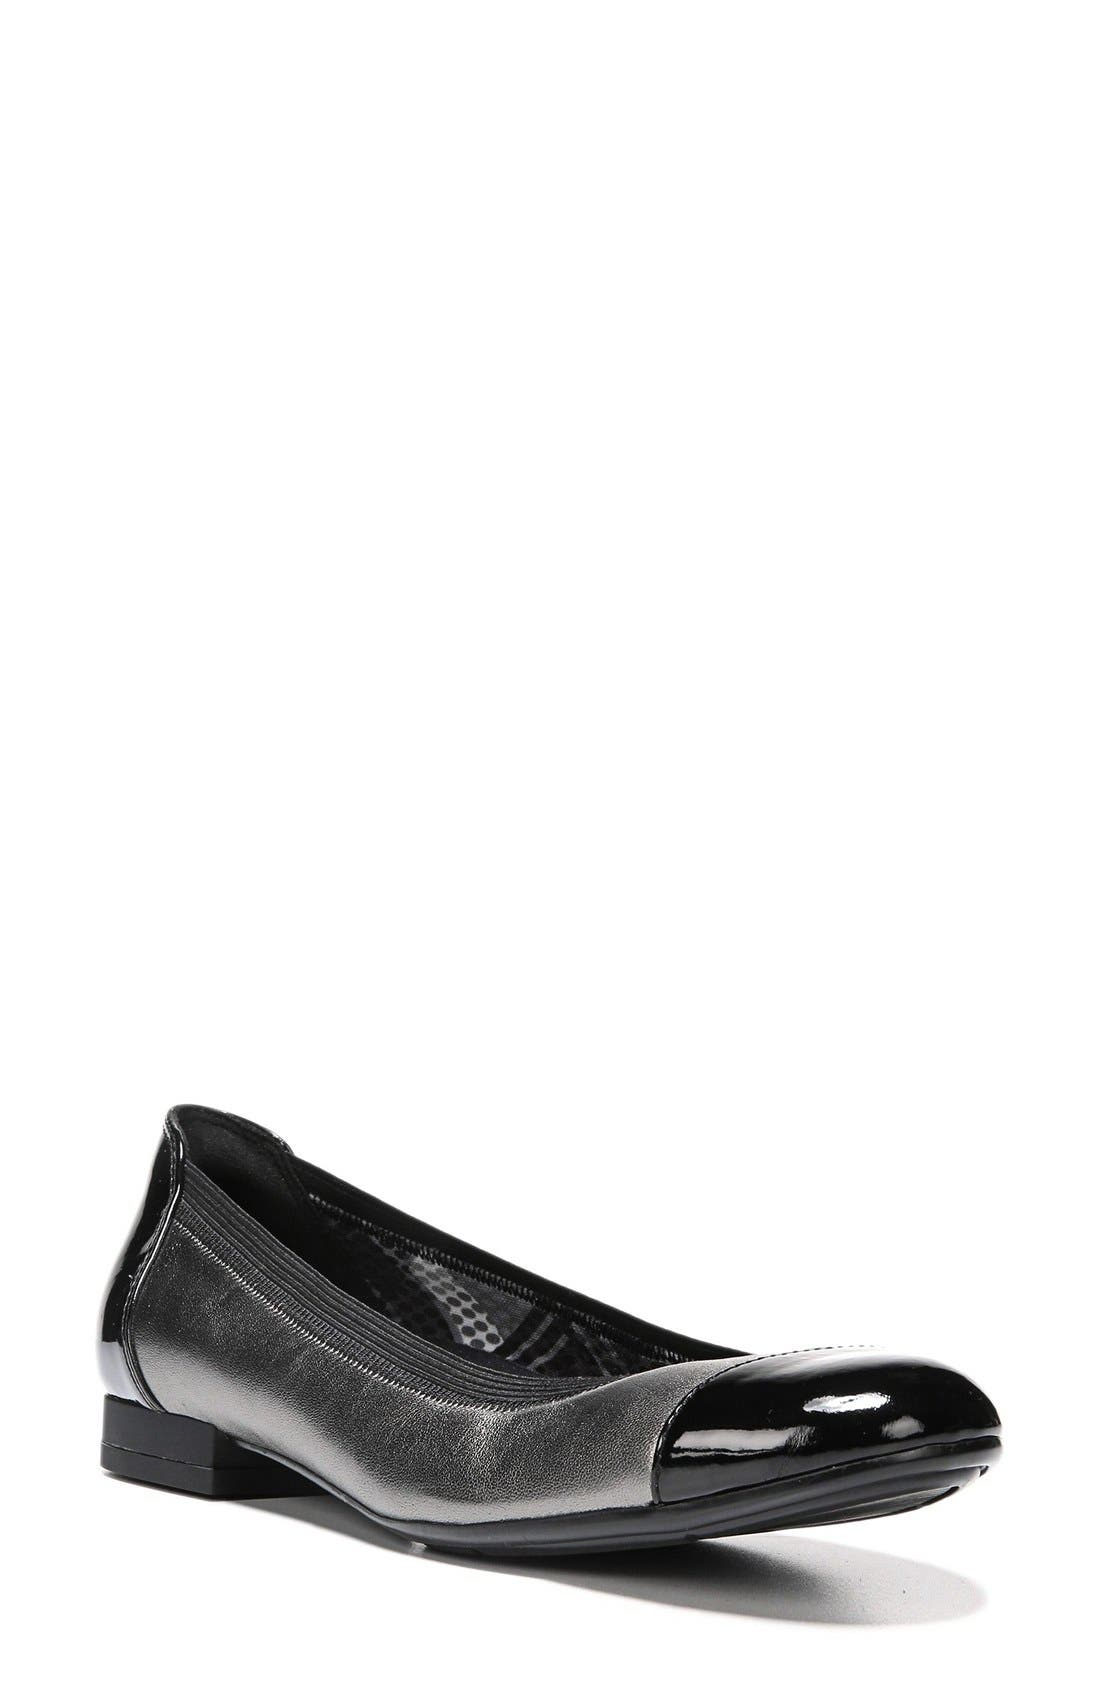 NATURALIZER 'Therese' Cap Toe Flat